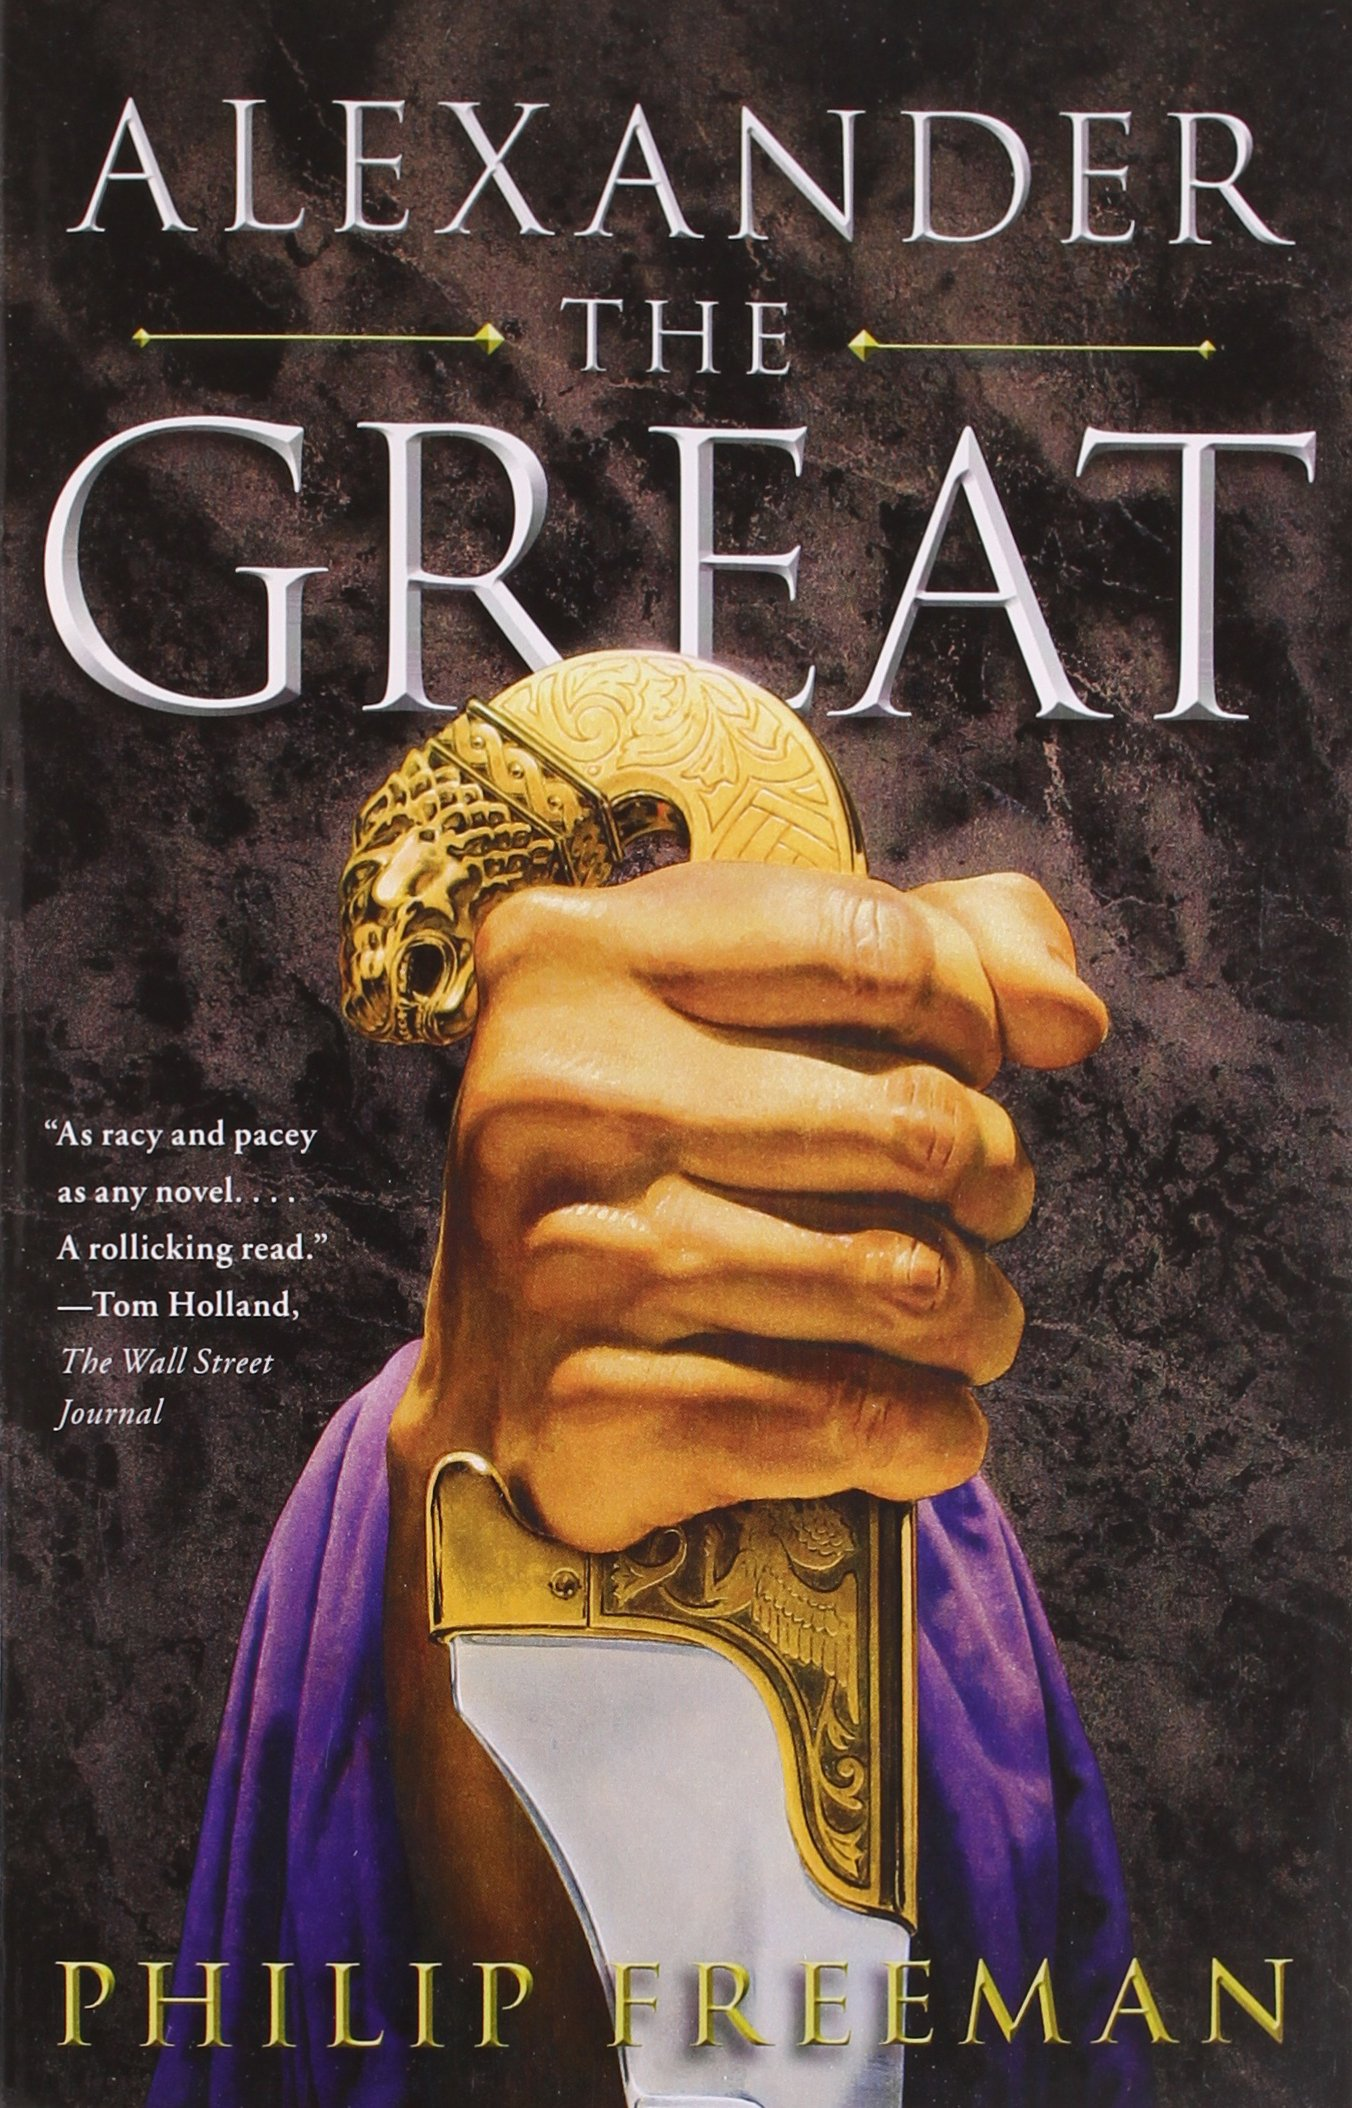 Amazoncom Alexander The Great 8601411102639 Philip Freeman Books